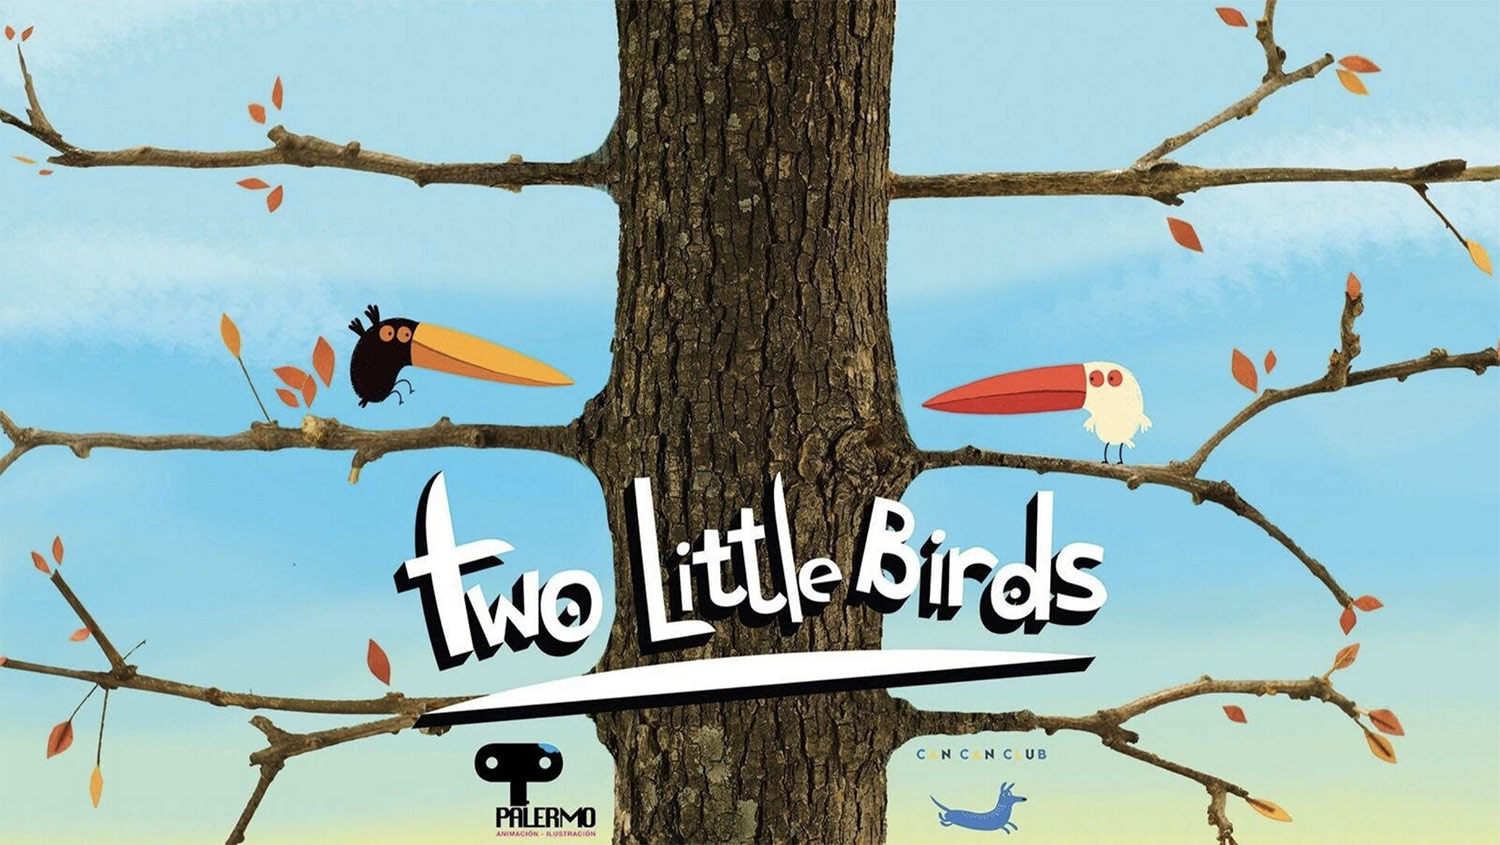 """Two Little Birds,"" from Argentina's Can Can Club and Uruguay's Palermo Estudio, was selected to be pitched at the next Pixelatl and Quirino Forum."